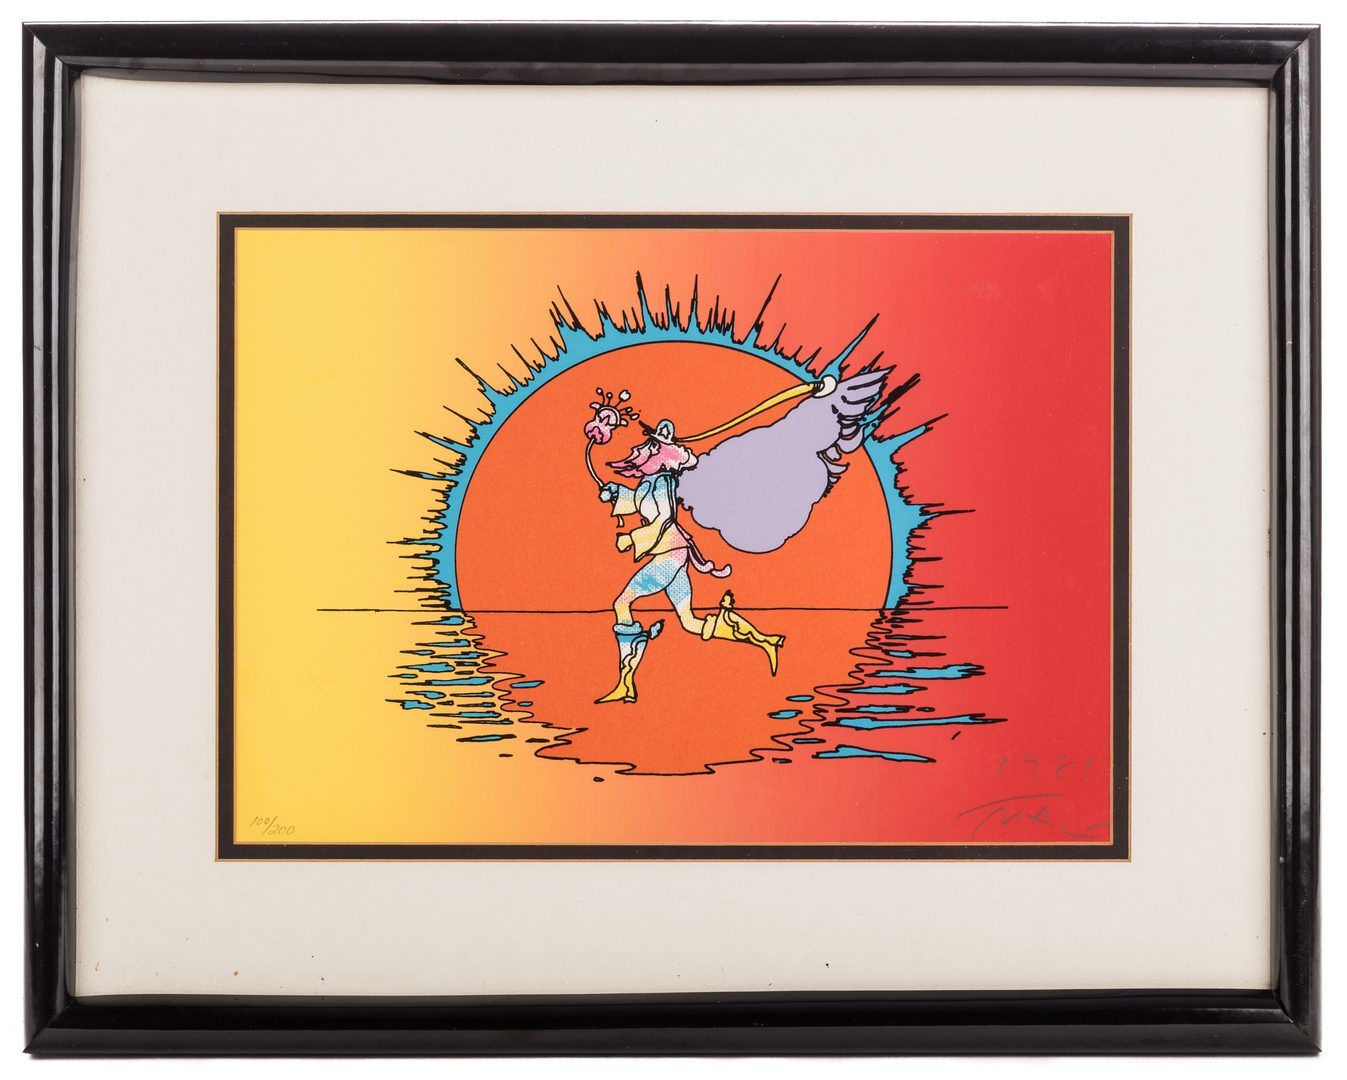 Lot 470: Peter Max Signed Serigraph of a Runner